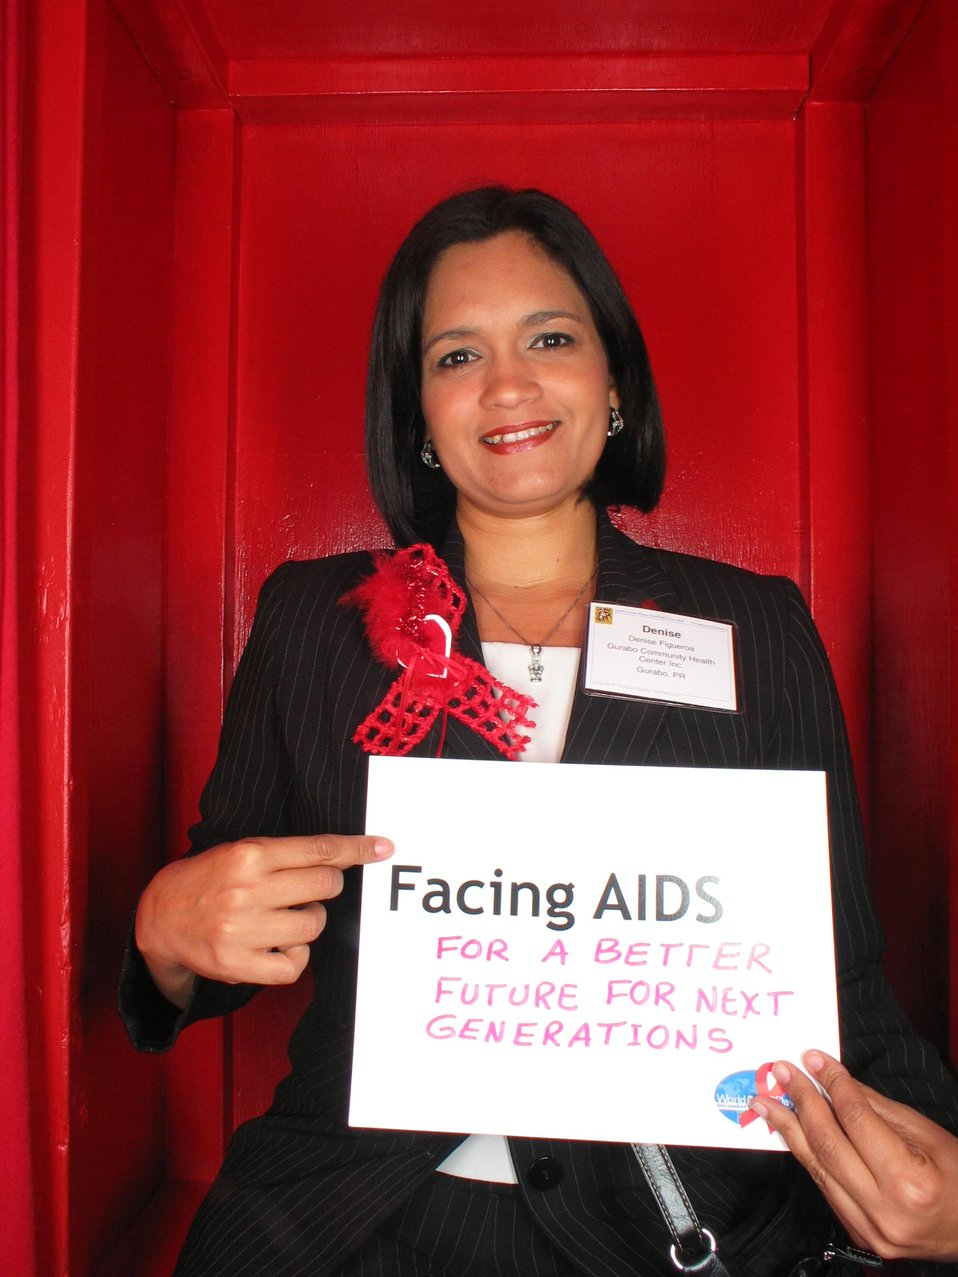 Facing AIDS for a better future for next generations.